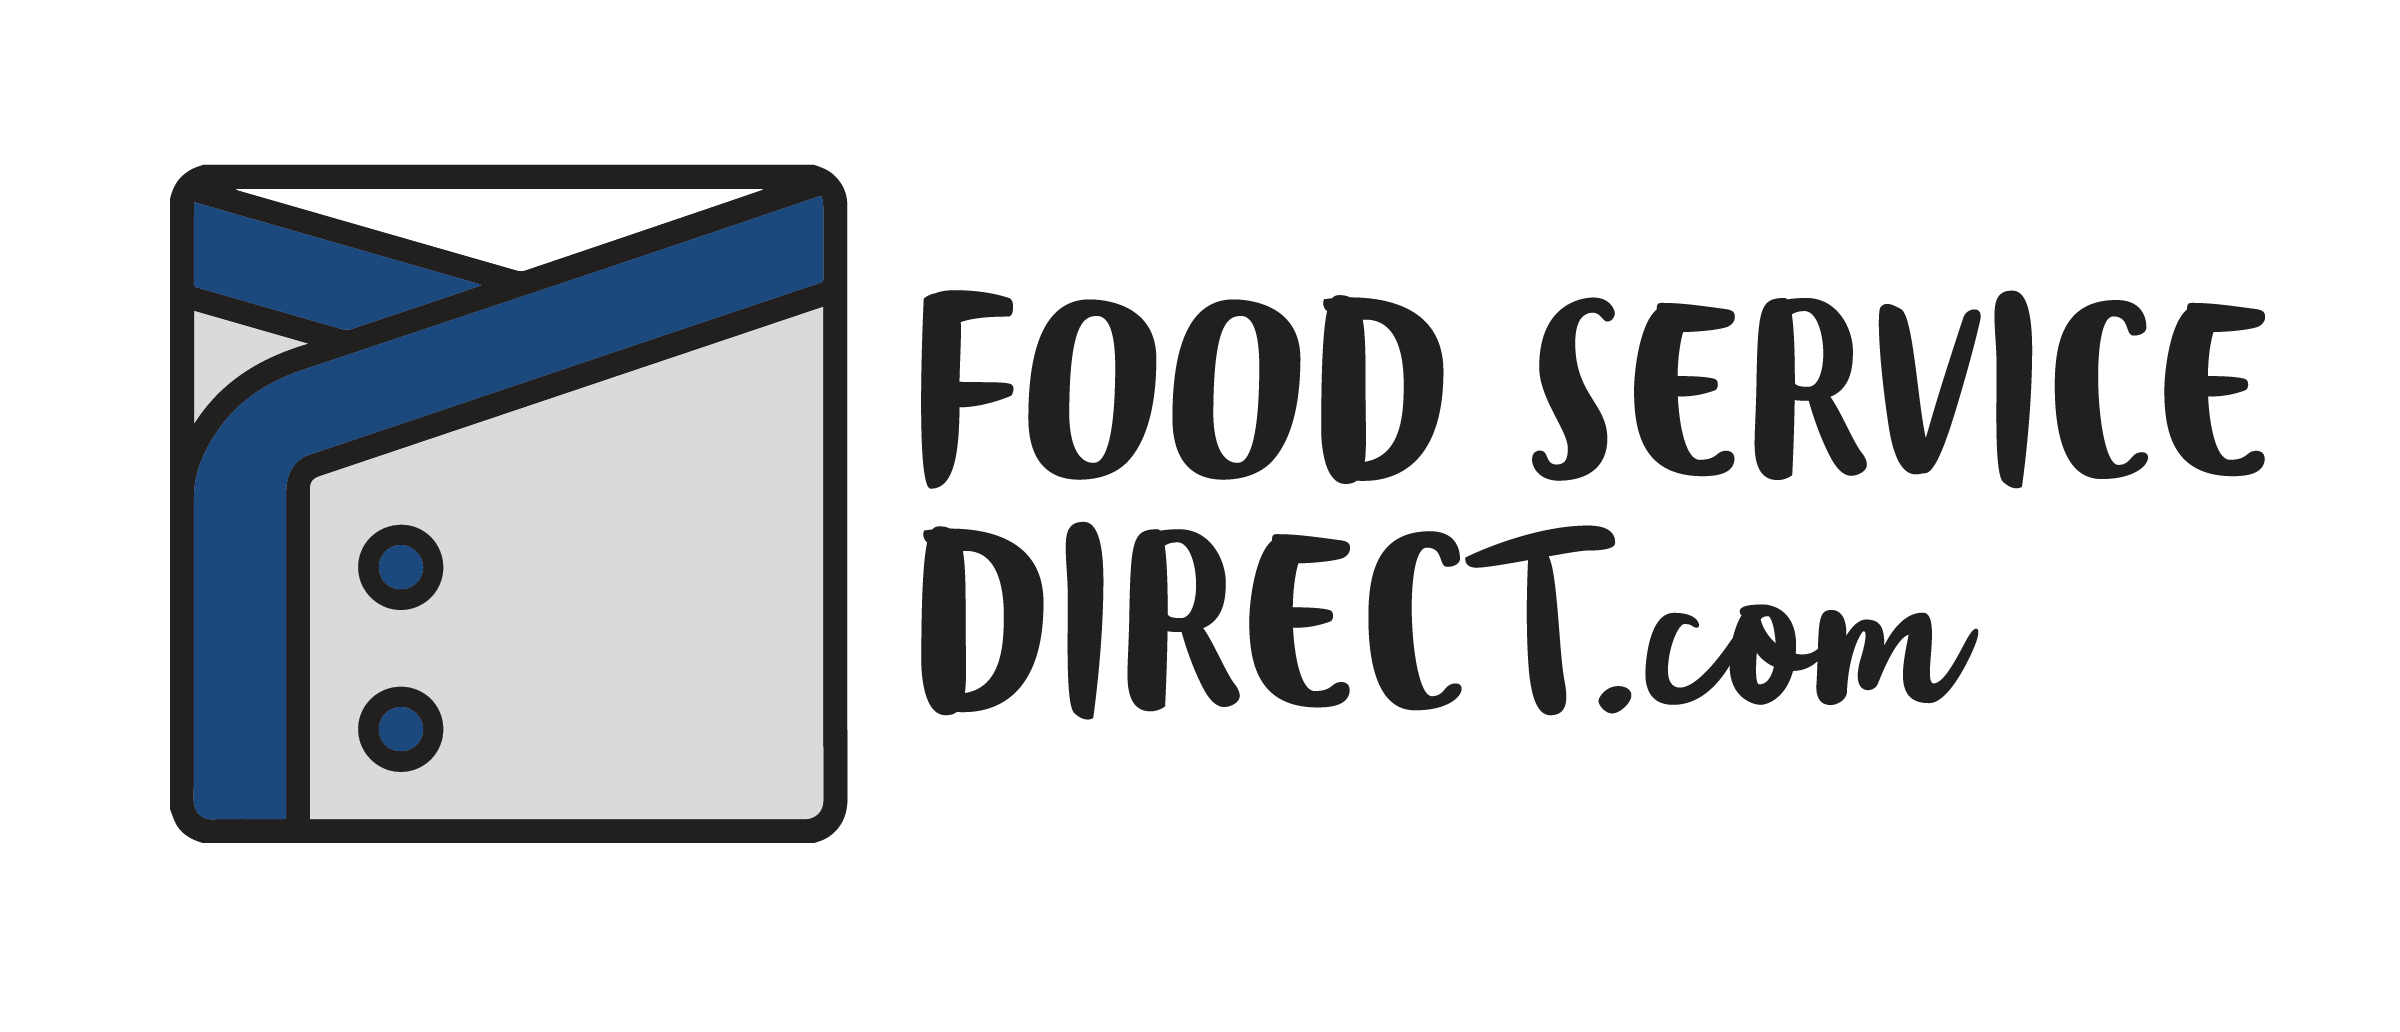 food-service-direct logo